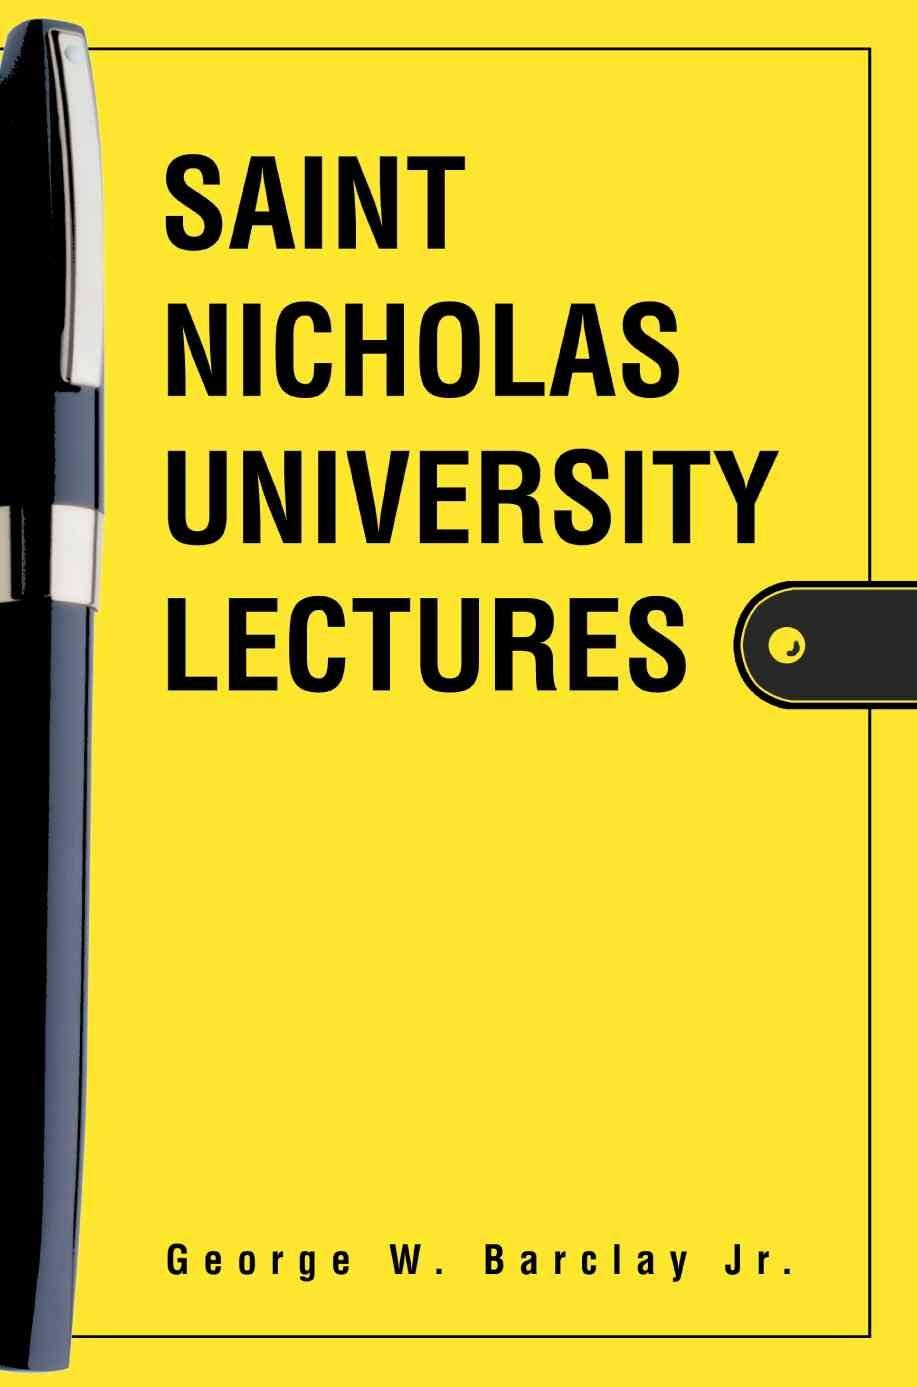 Saint Nicholas University Lectures - George W Barclay, Jr